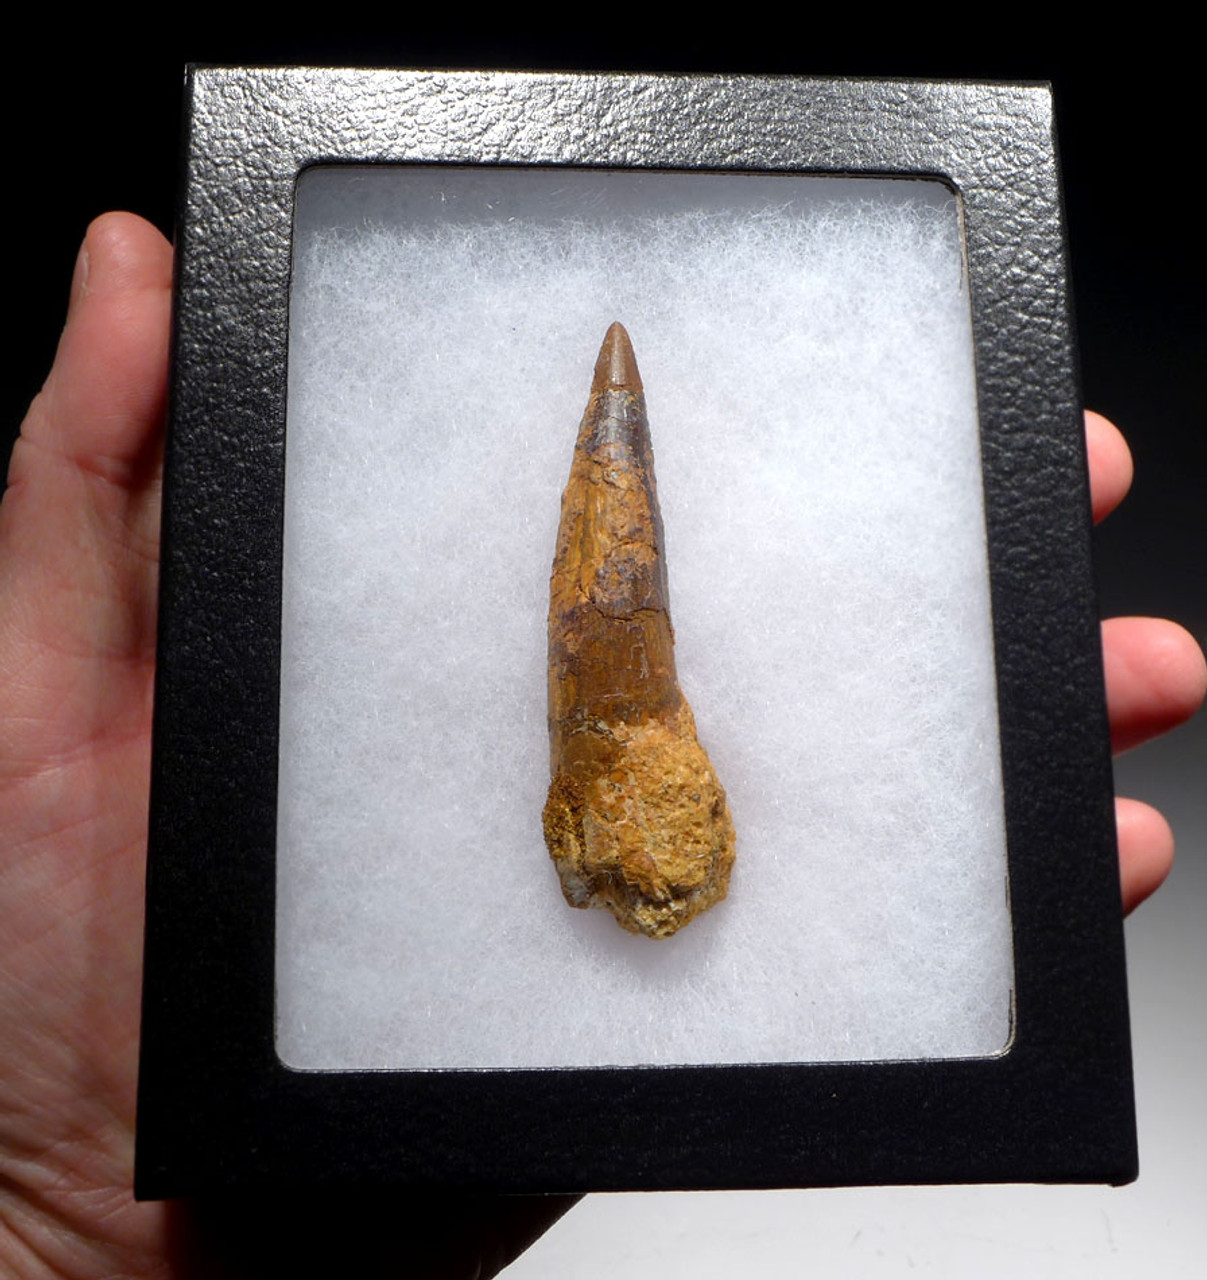 INEXPENSIVE 3 INCH SPINOSAURUS DINOSAUR FOSSIL TOOTH WITH SHARP TIP *DT5-430